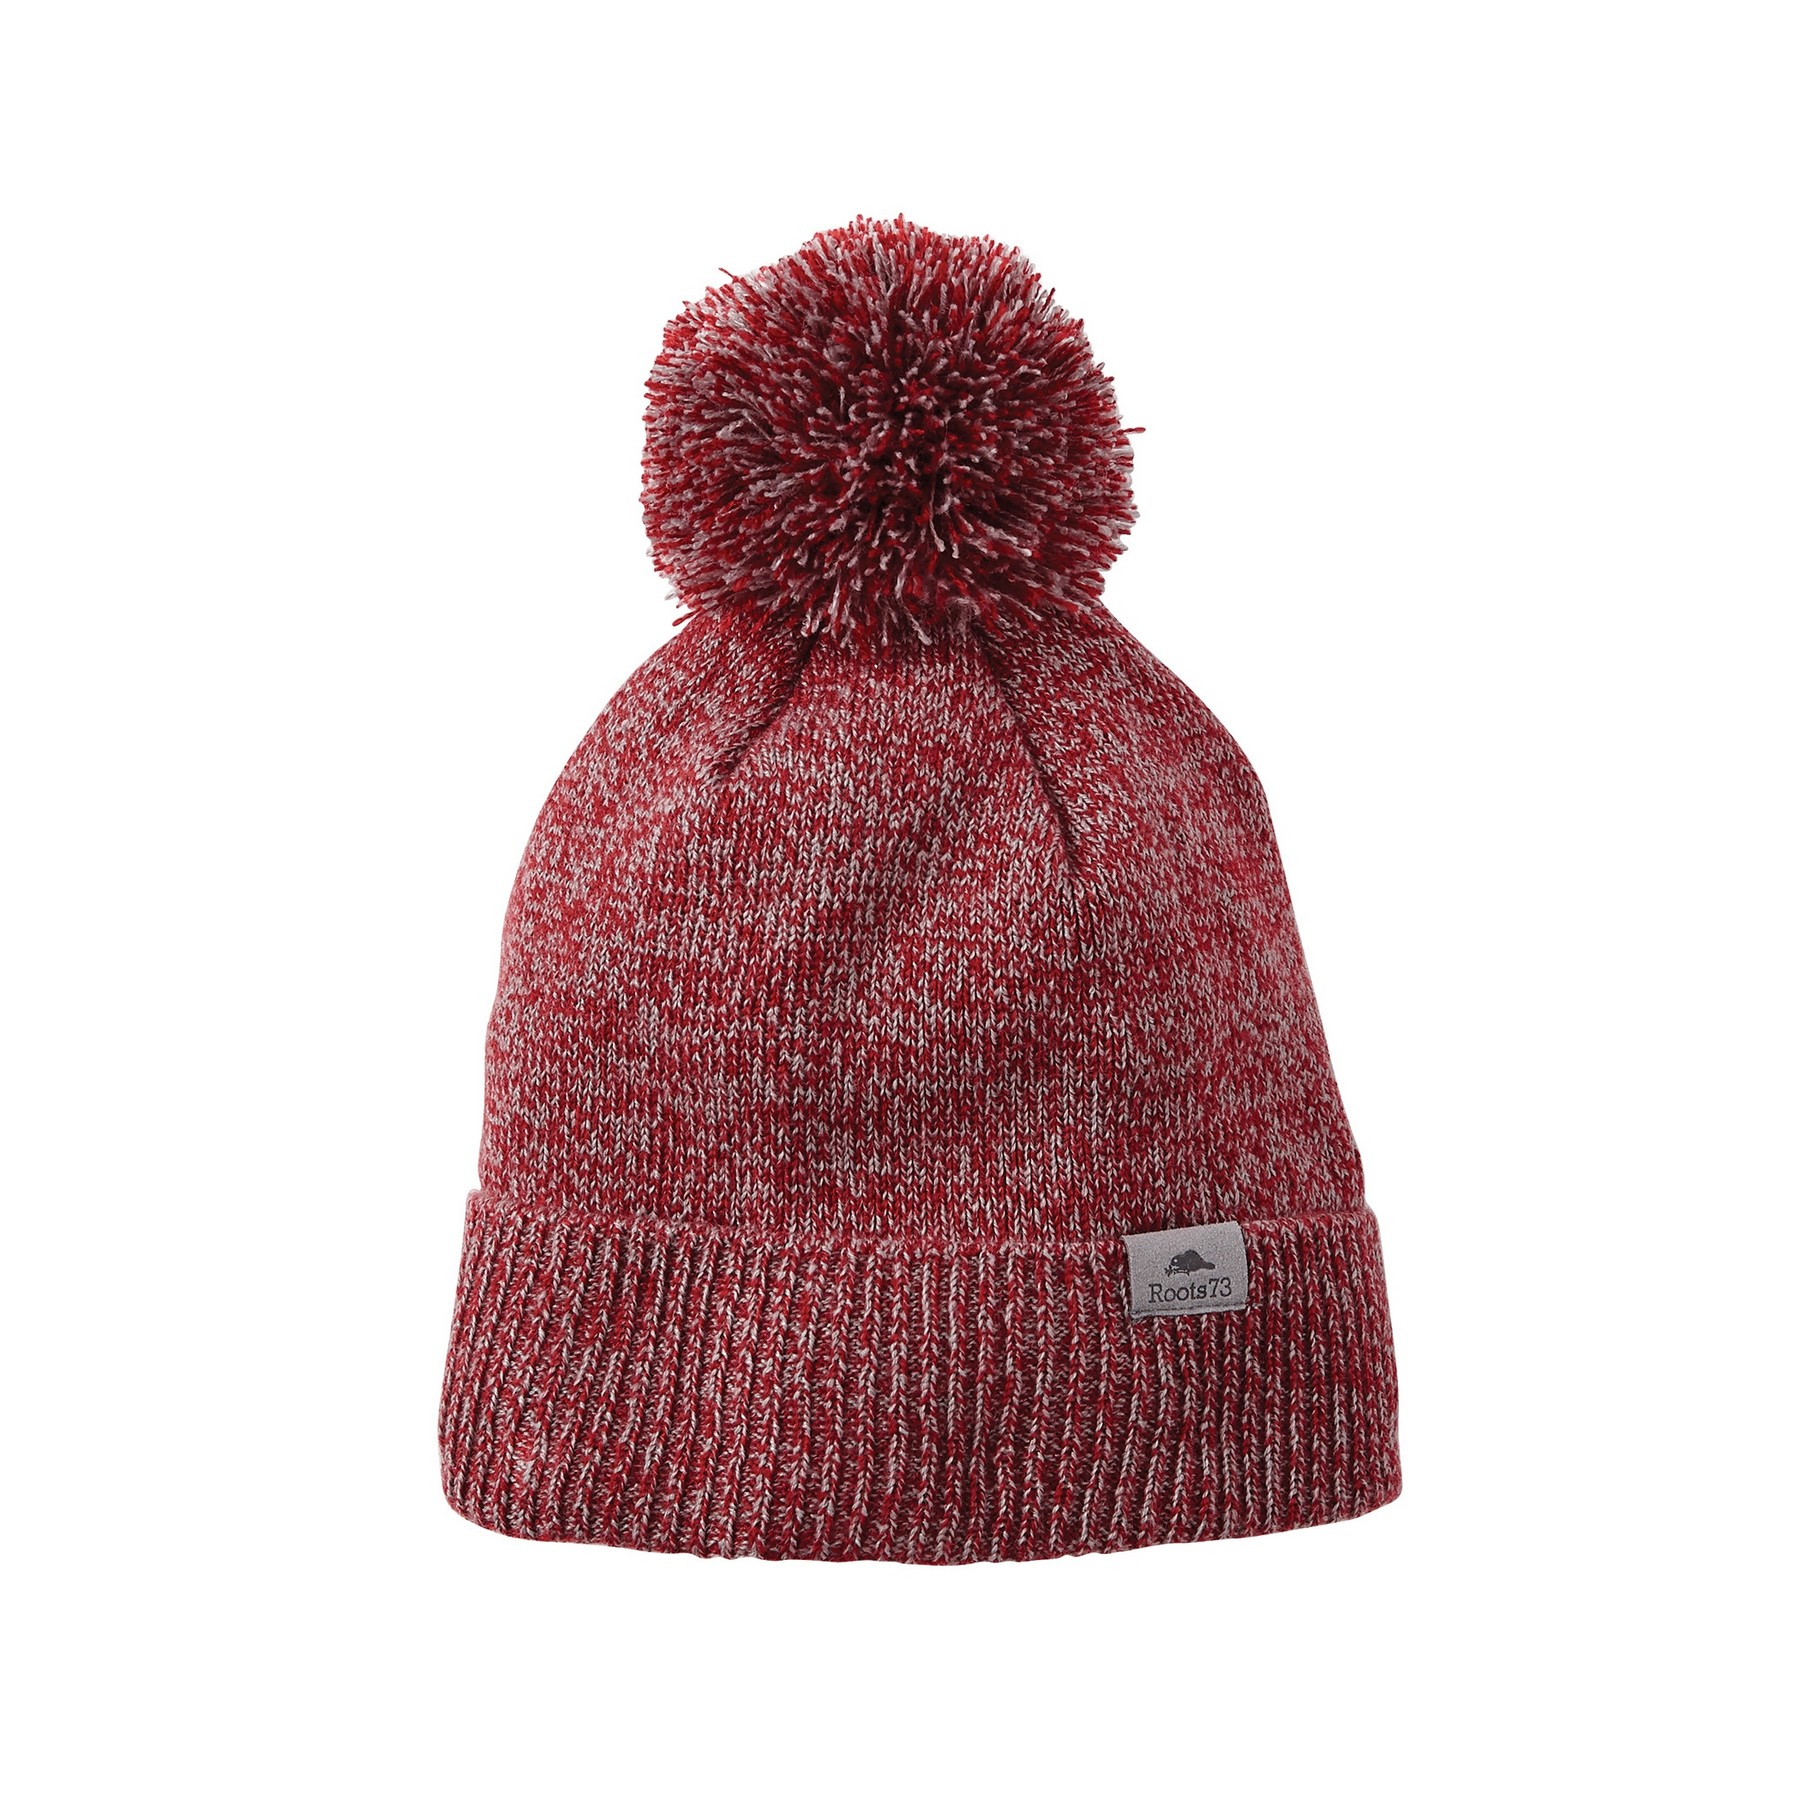 U-SHELTY Roots73 Knitted Toque Hat, #36108 - Embroidered